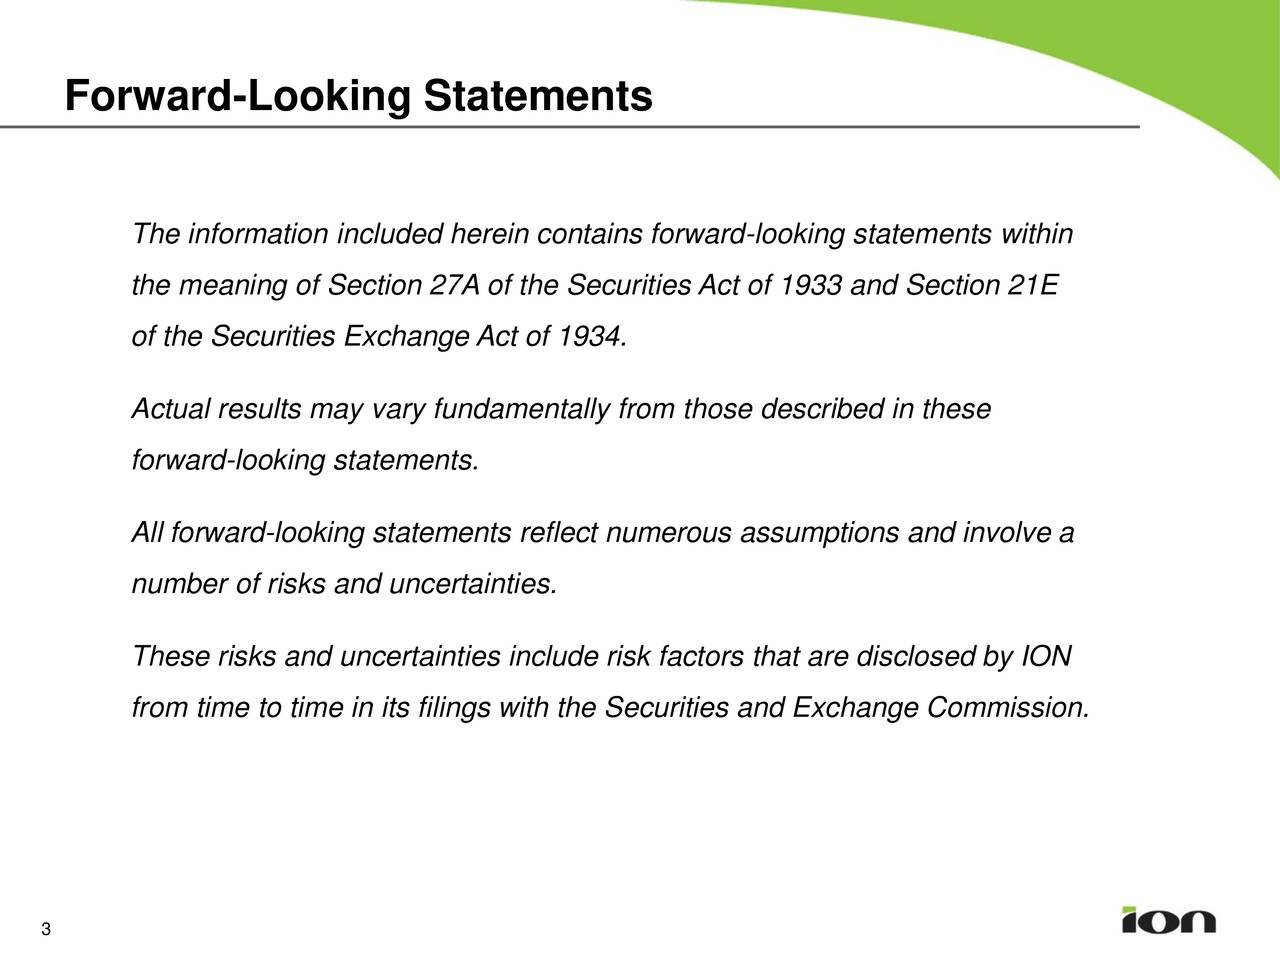 The information included herein contains forward-looking statements within the meaning of Section 27A of the Securities Act of 1933 and Section 21E of the Securities Exchange Act of 1934. Actual results may vary fundamentally from those described in these forward-looking statements. All forward-looking statements reflect numerous assumptions and involve a number of risks and uncertainties. These risks and uncertainties include risk factors that are disclosed by ION from time to time in its filings with the Securities and Exchange Commission. 3